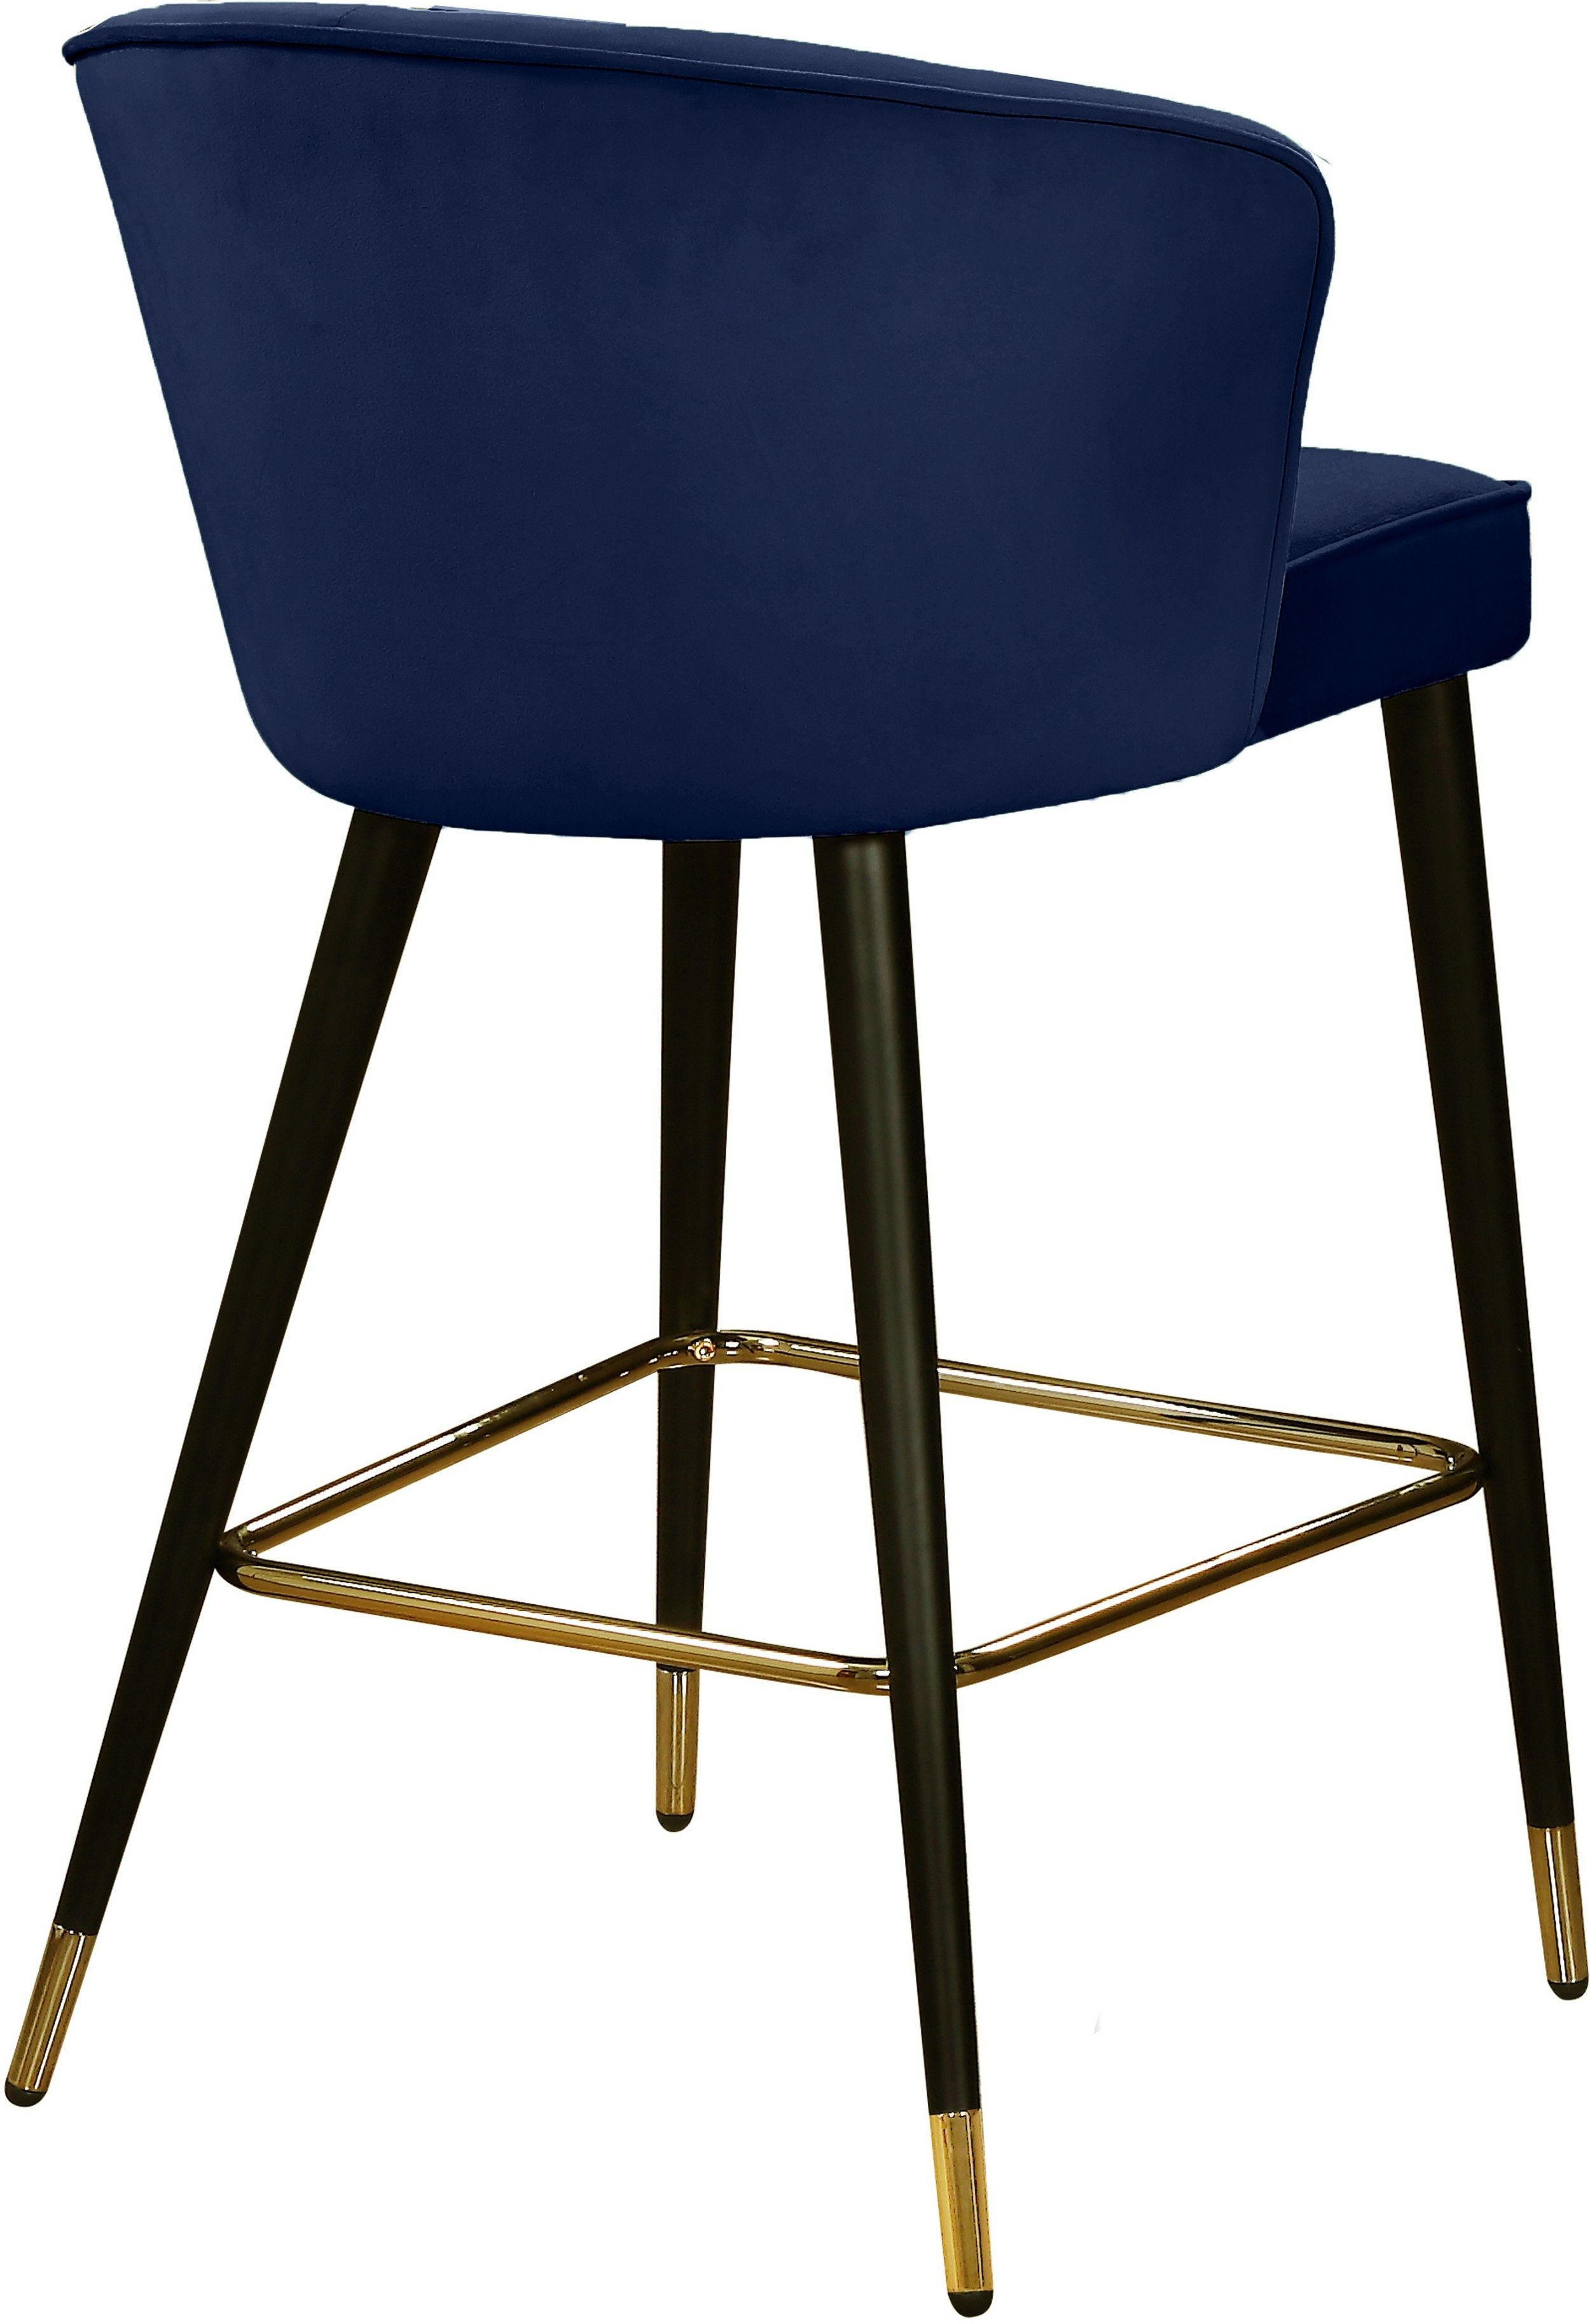 Cassie Navy Bar Stool 793 Meridian Furniture Bar Tables In 2020 Modern Bar Stools Bar Stools Modern Bar